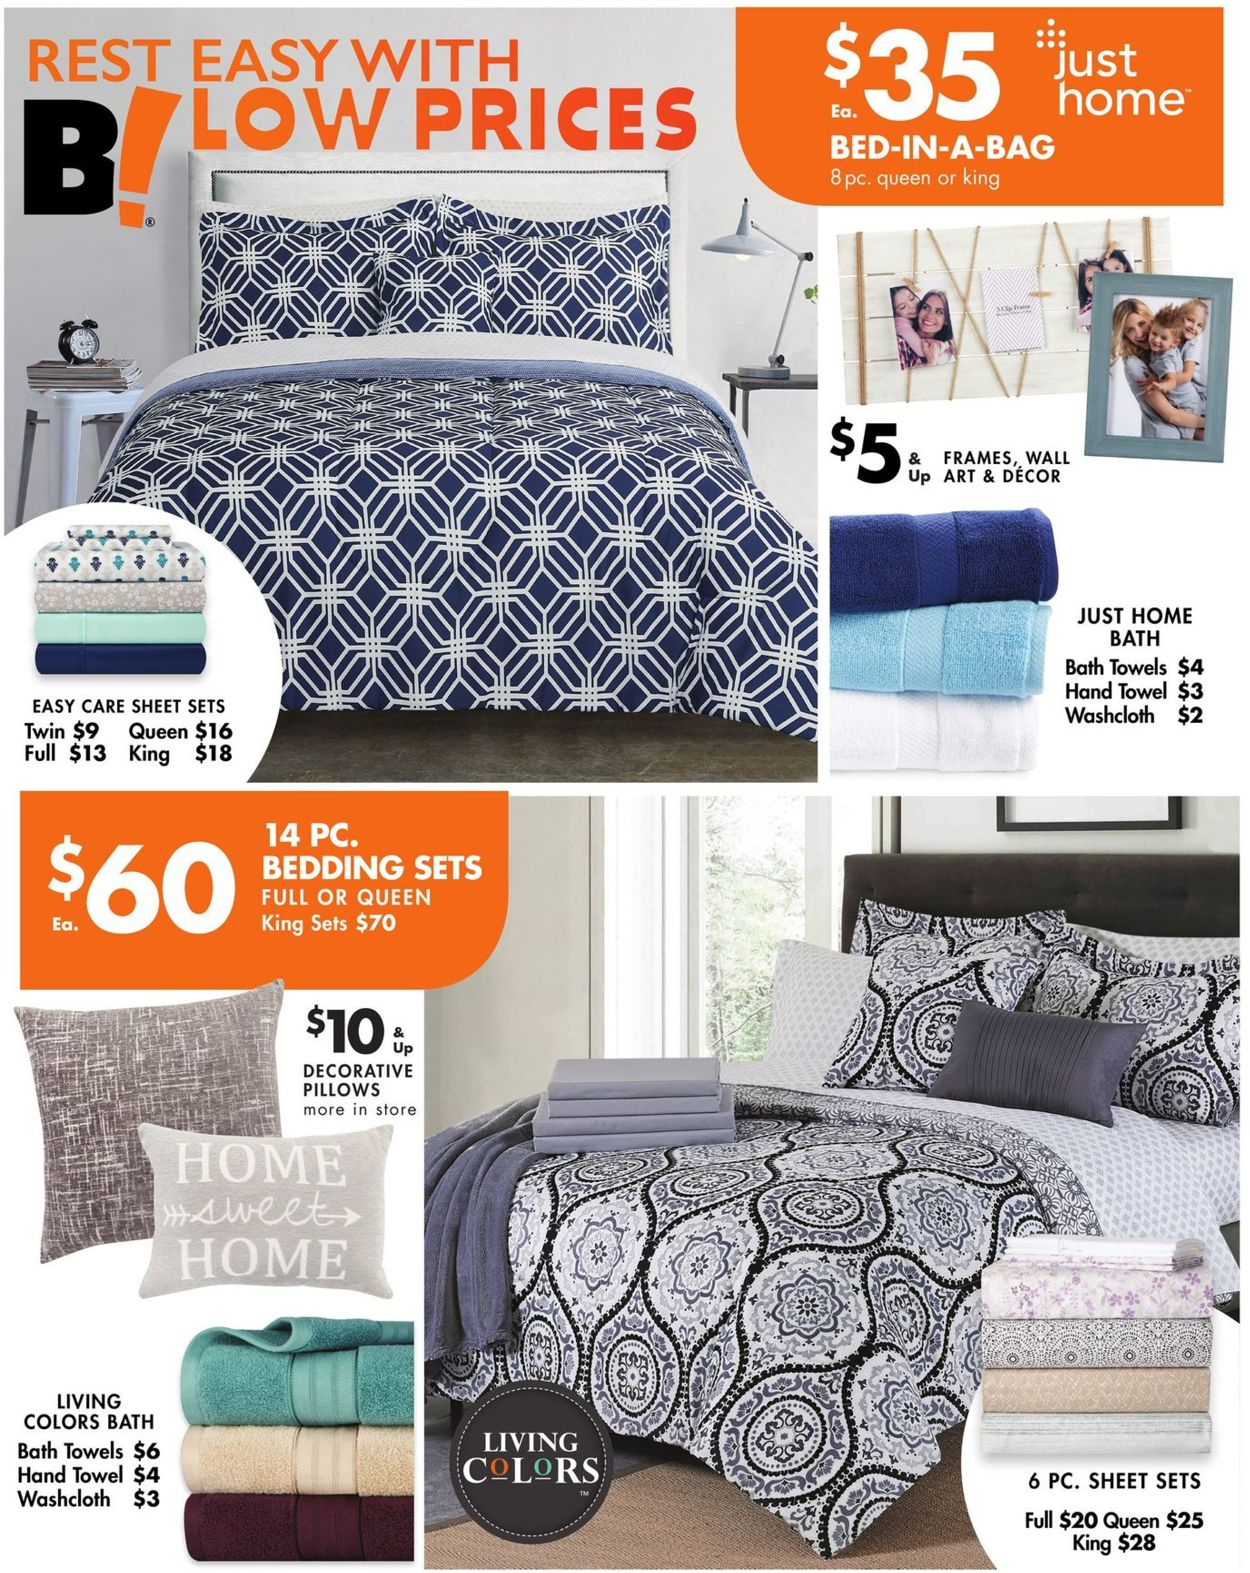 Big Lots Current weekly ad 8/8 - 8/8/208 [8] - frequent-ads.com